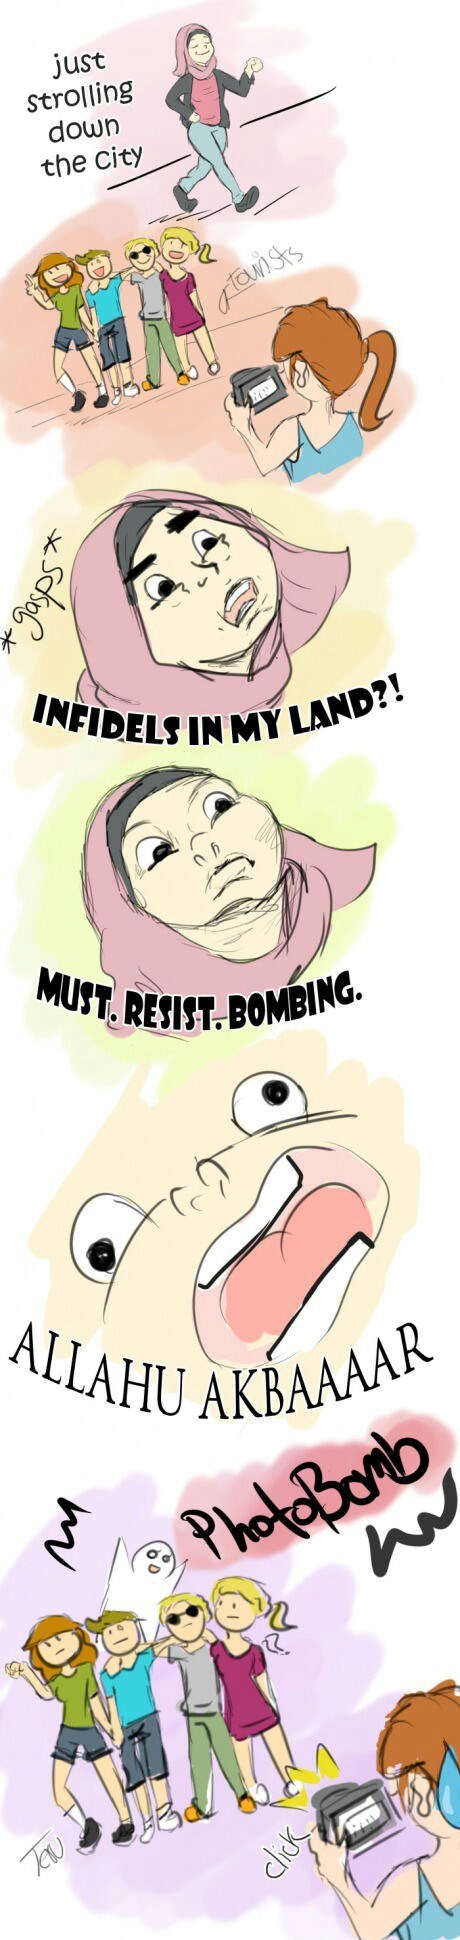 funny-web-comics-so-this-is-what-a-muslim-thinks-when-infidels-visit-their-land